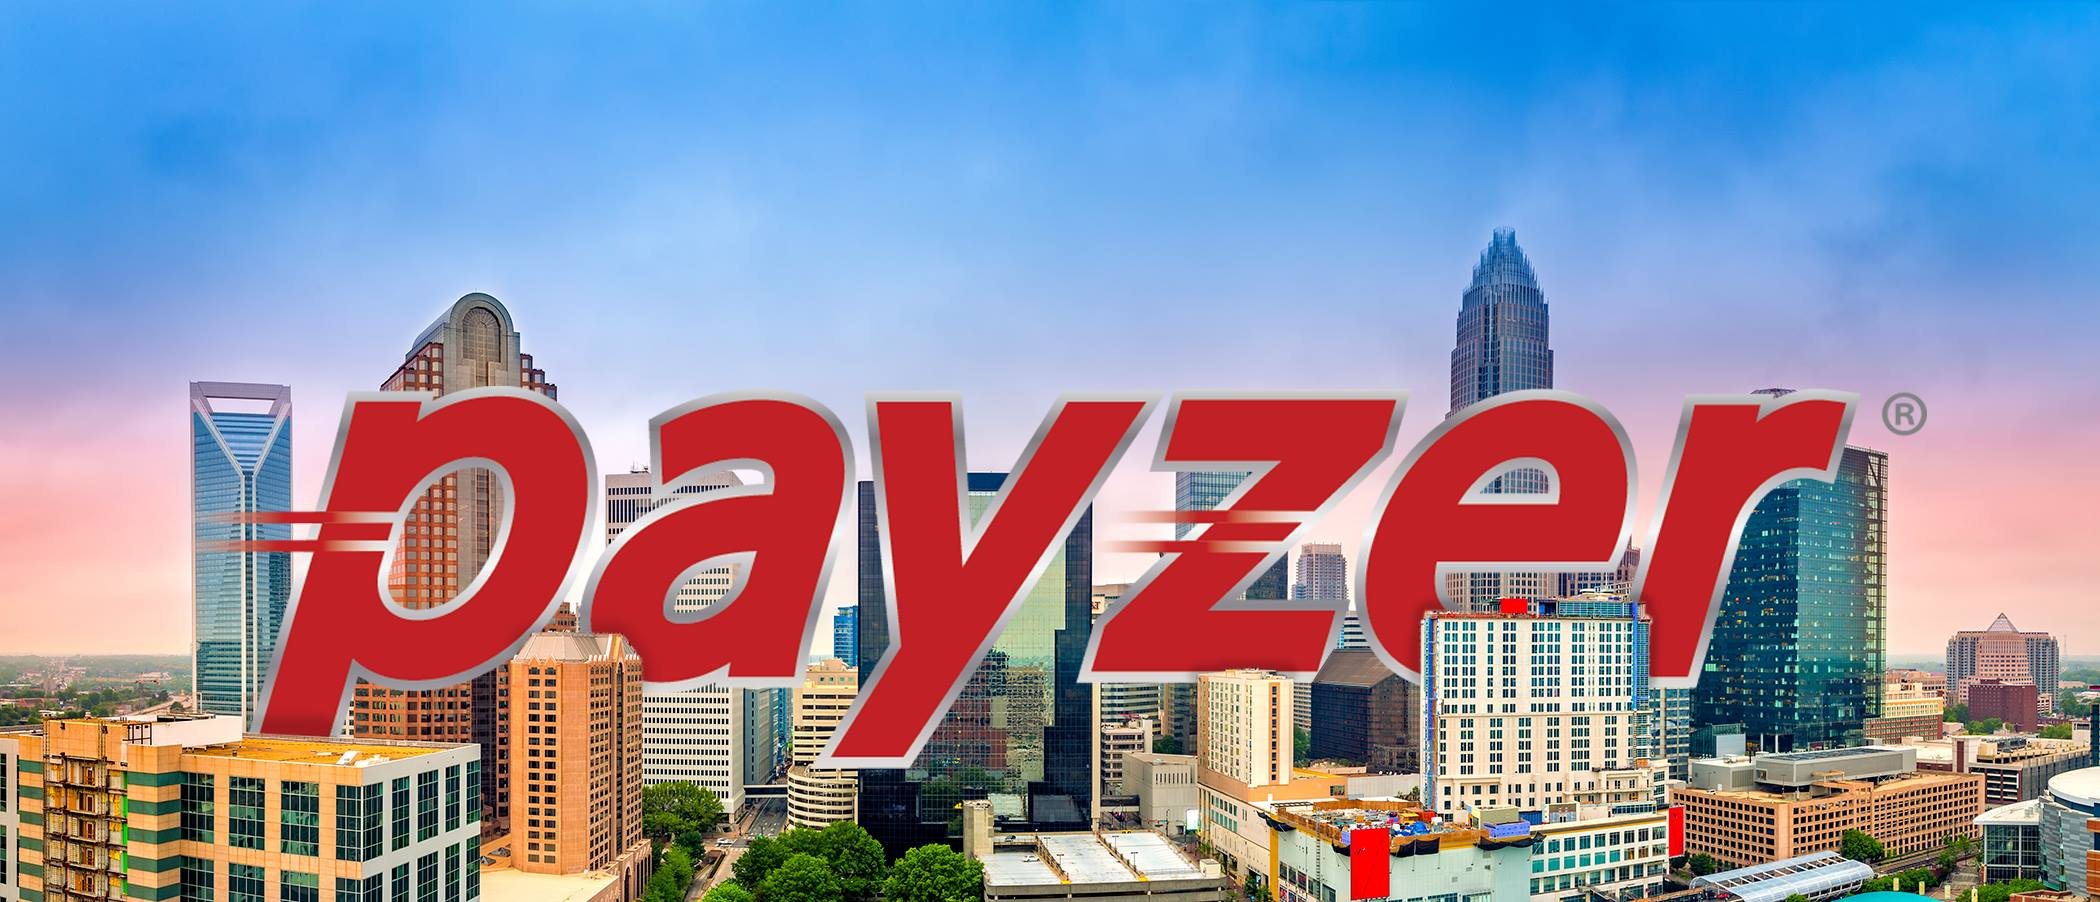 Payzer - Located in Charlotte, NC